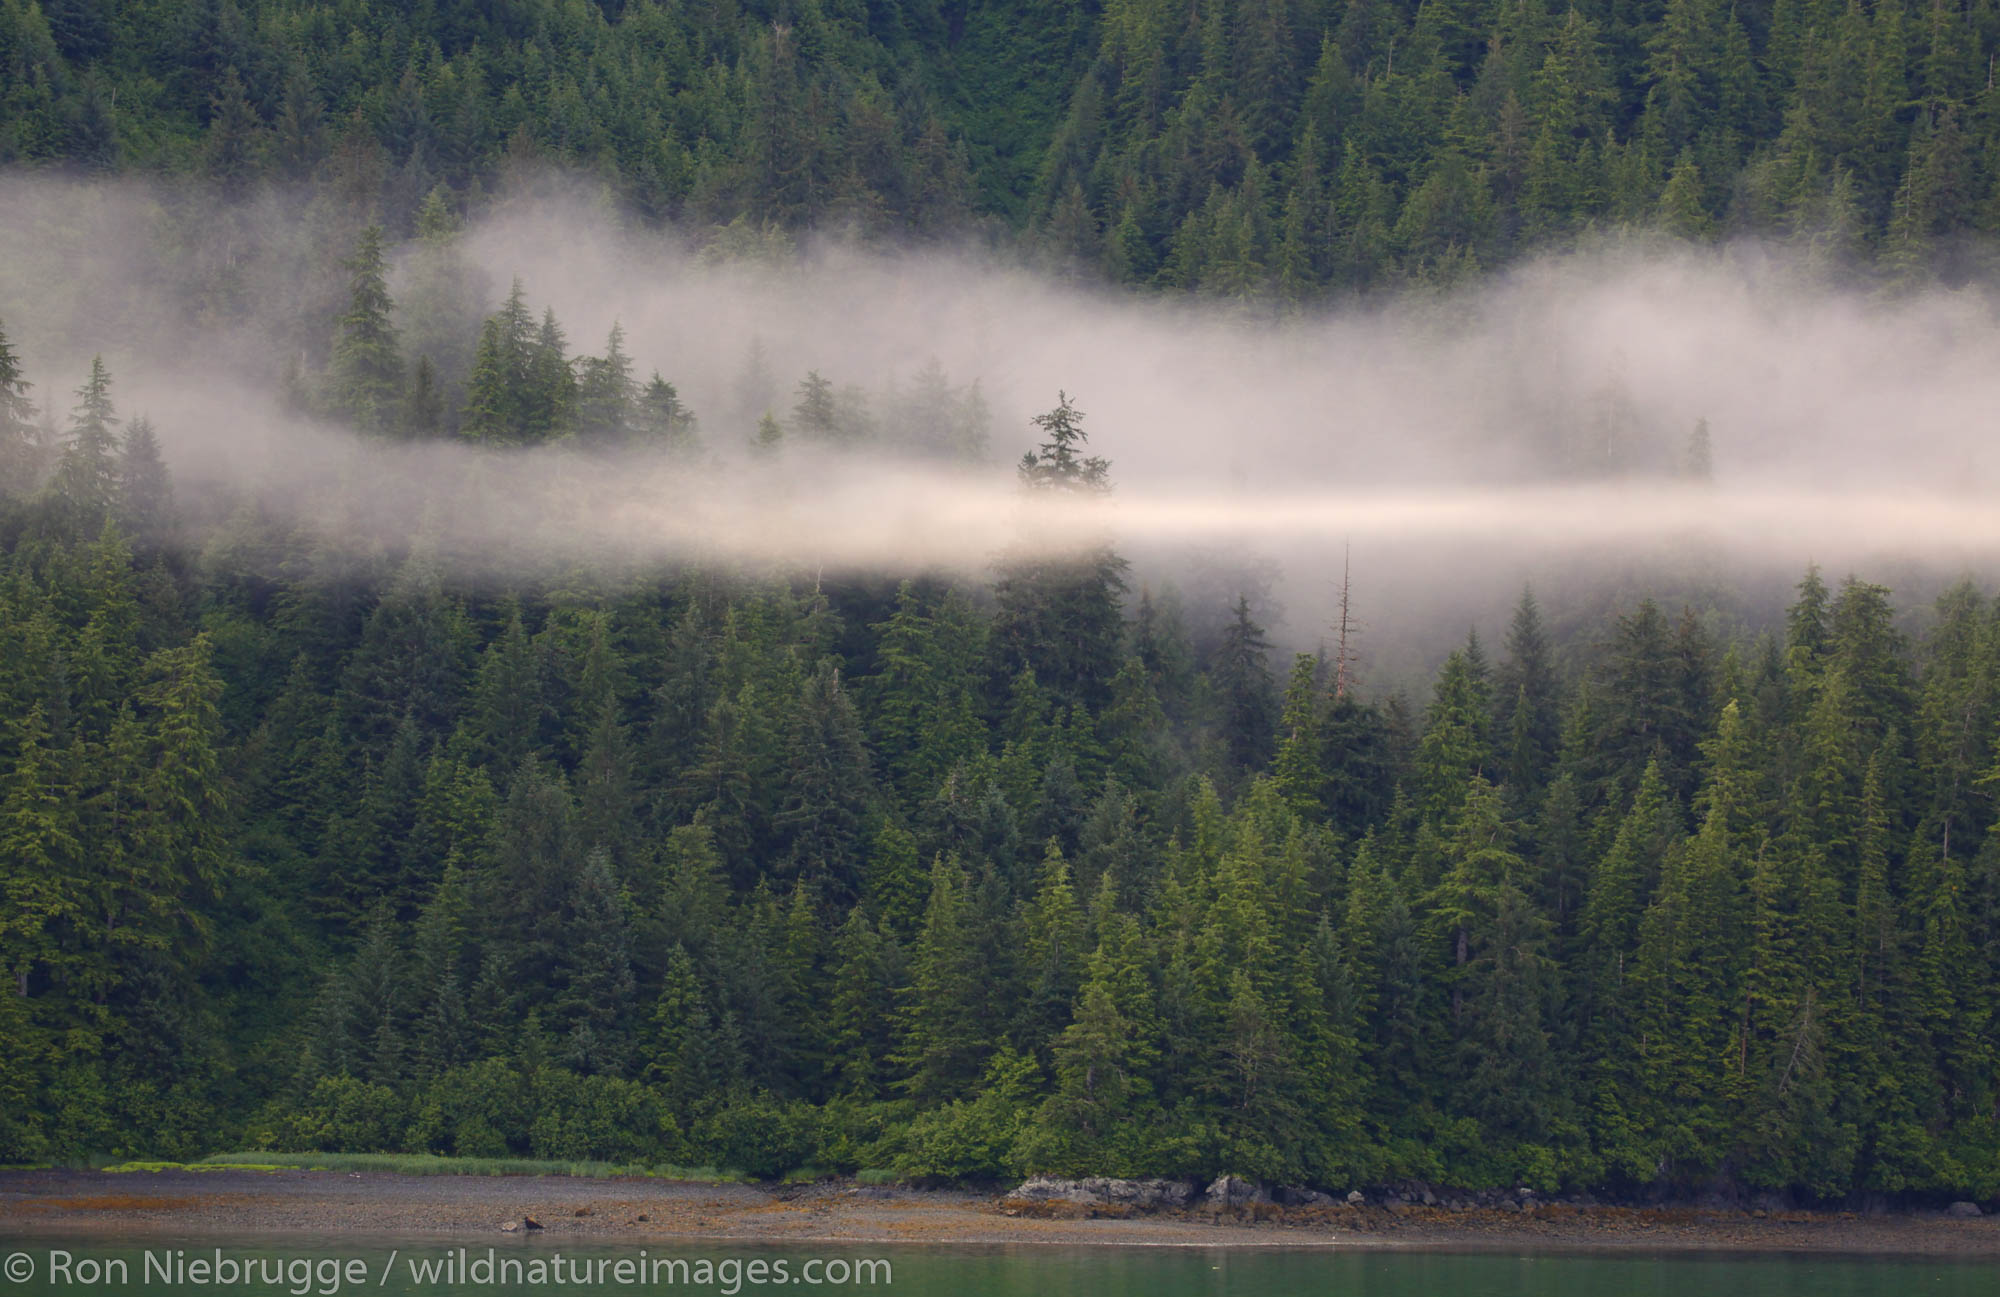 Low clouds over the temperate rainforest, Prince William Sound, Chugach National Forest, Alaska.